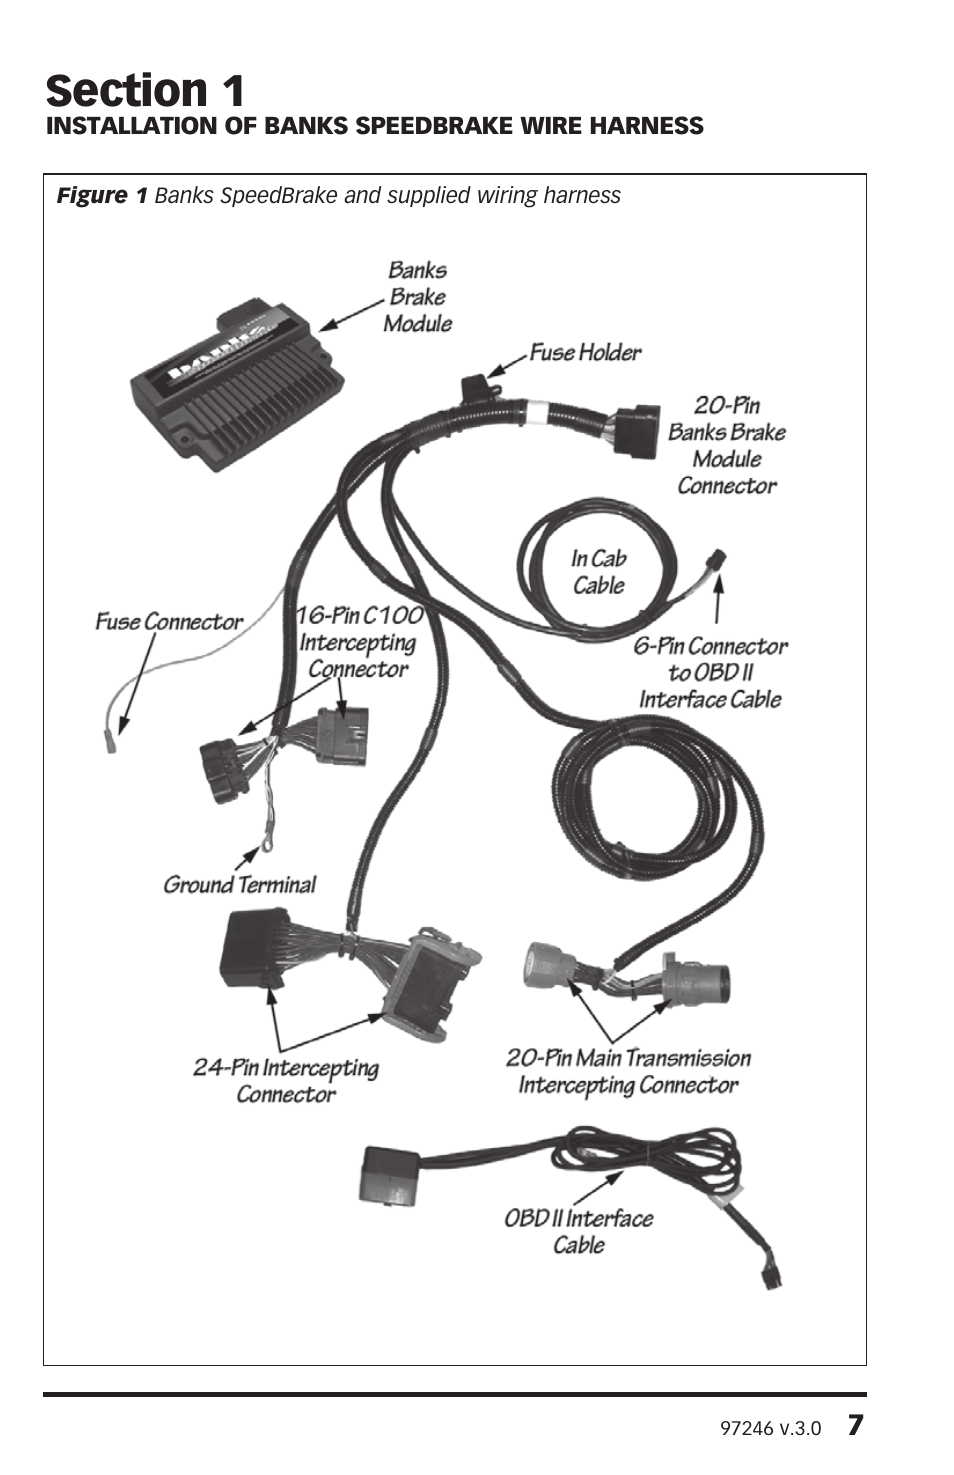 [DIAGRAM_5NL]  Banks Power Chevy_GMC Trucks: Duramax LLY-LBZ (Diesel '06 - 07 6.6L) Speed  Control- Banks Brake w_ Switch User Manual   Page 7 / 24   Lbz Wiring Harness      Manuals Directory